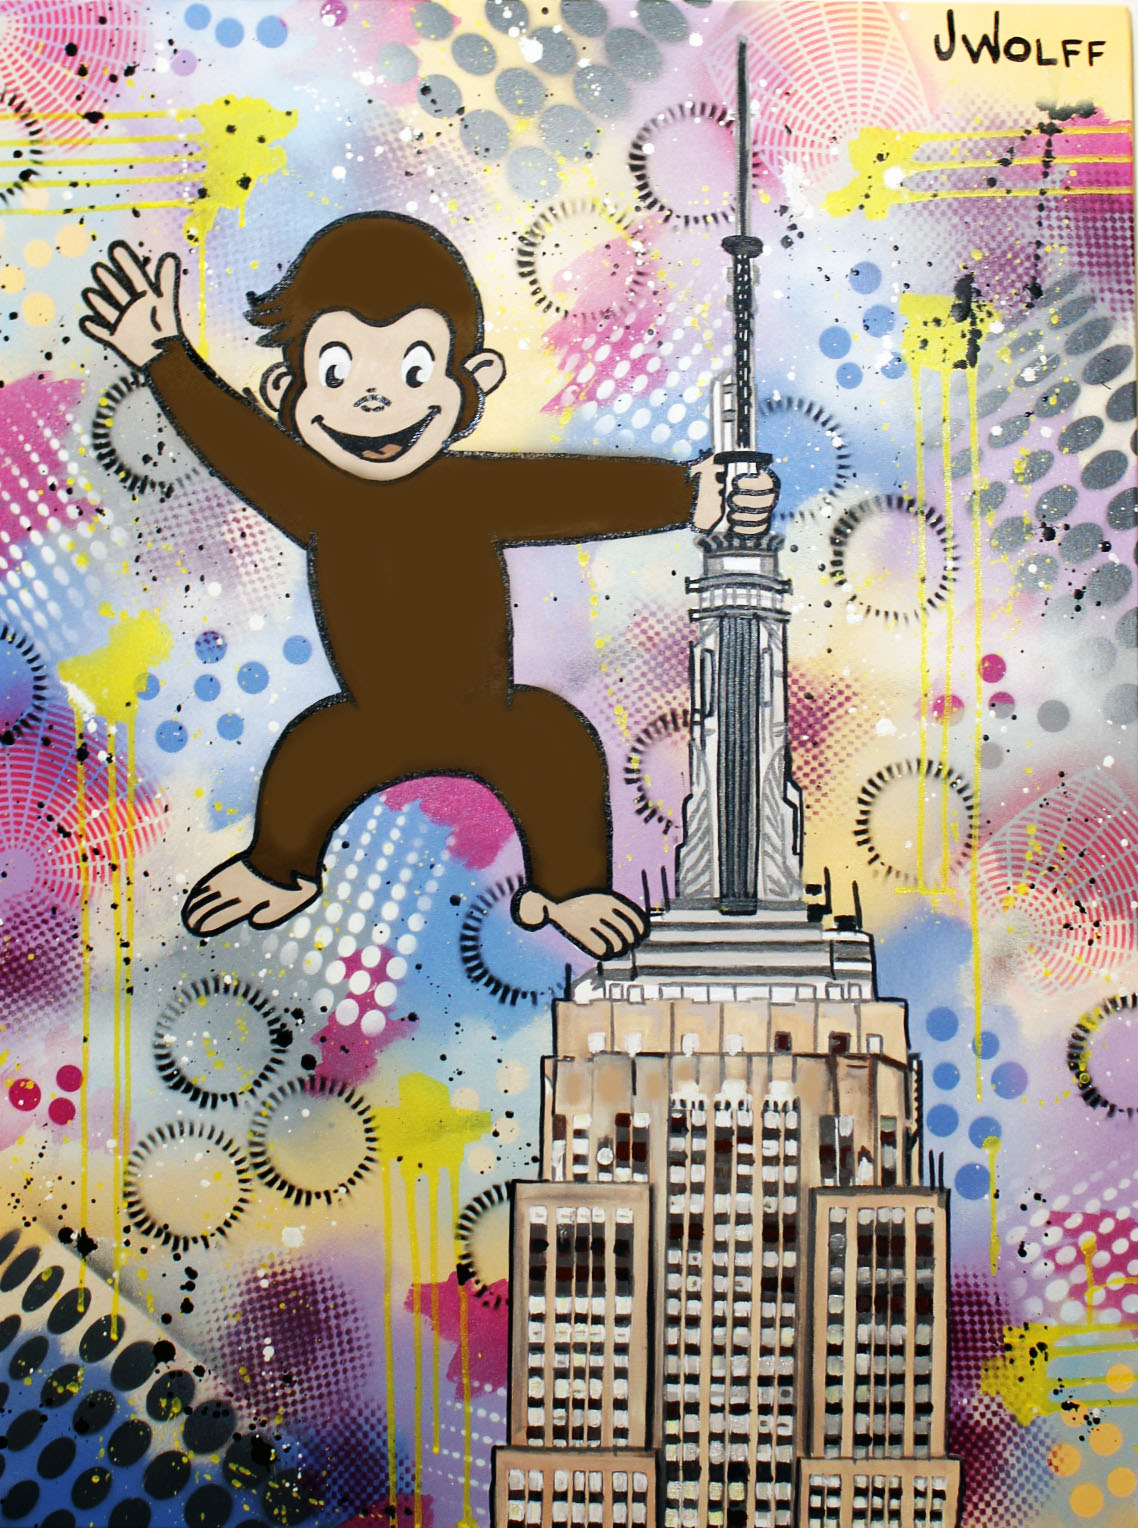 """King Curious George"" 30x40 inches JAcrylic and Aerosol on Gallery stretched Canvas"